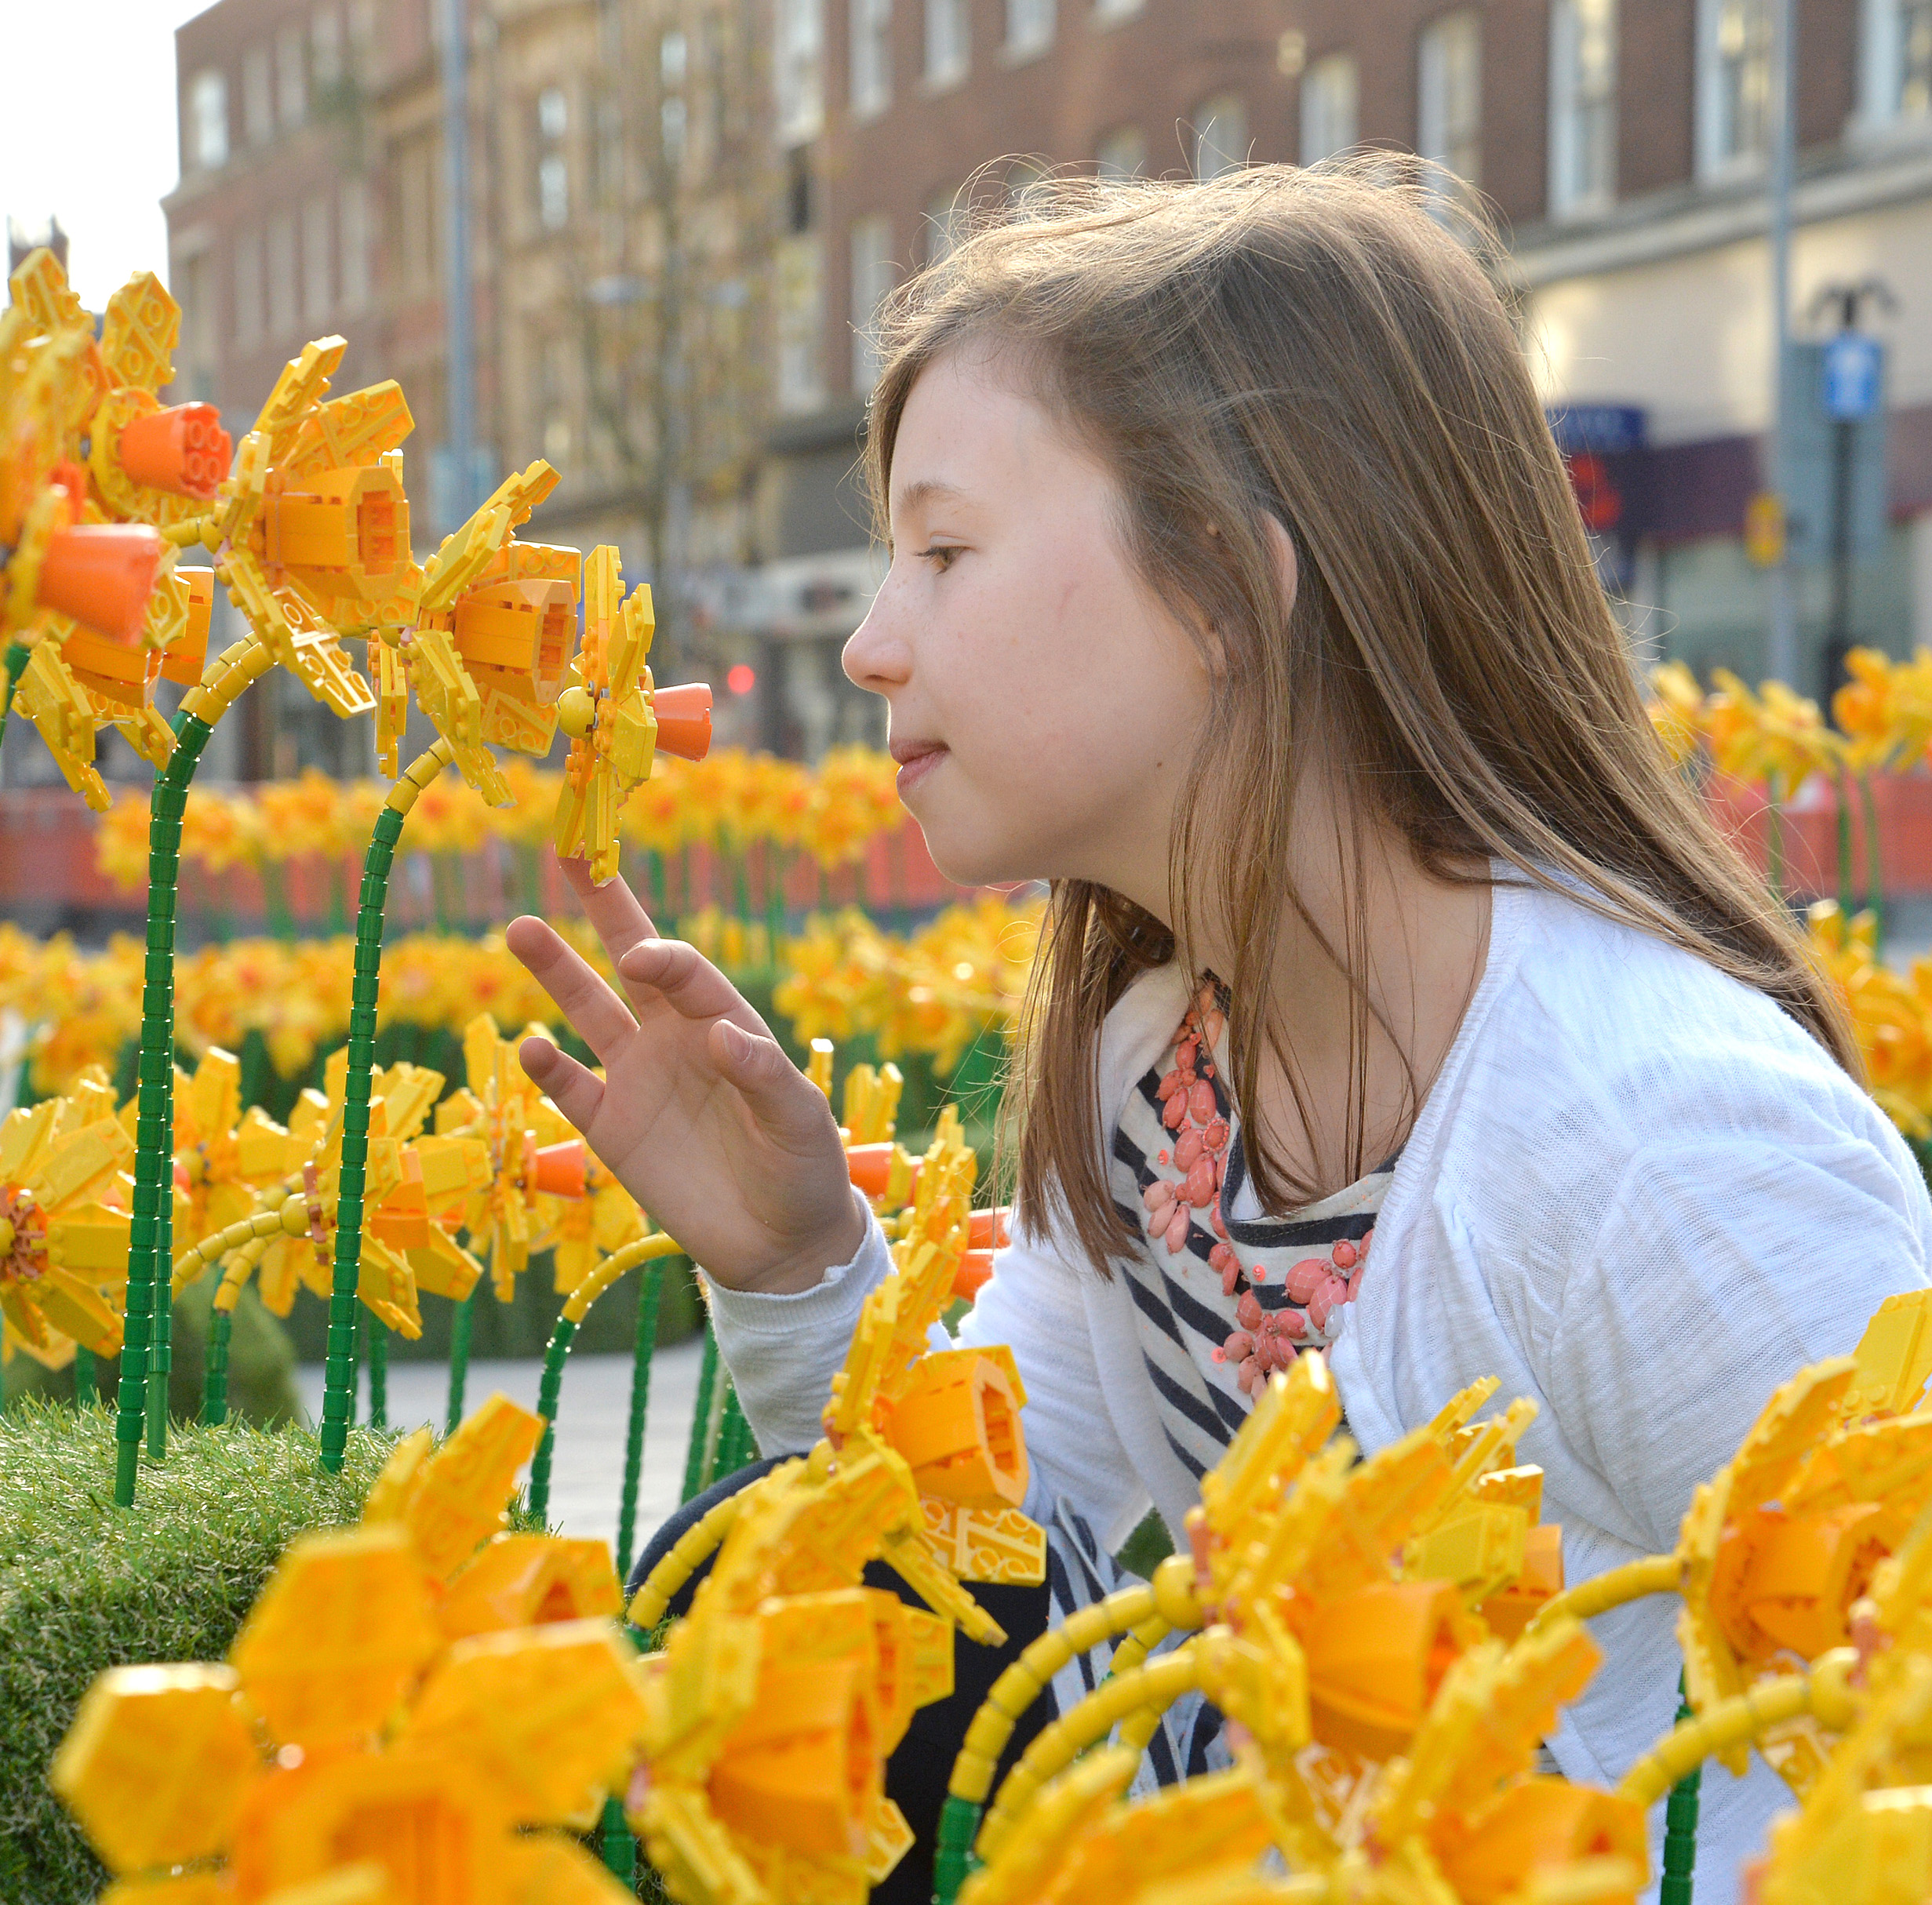 Lego daffodils in Hull, City of Culture 2017